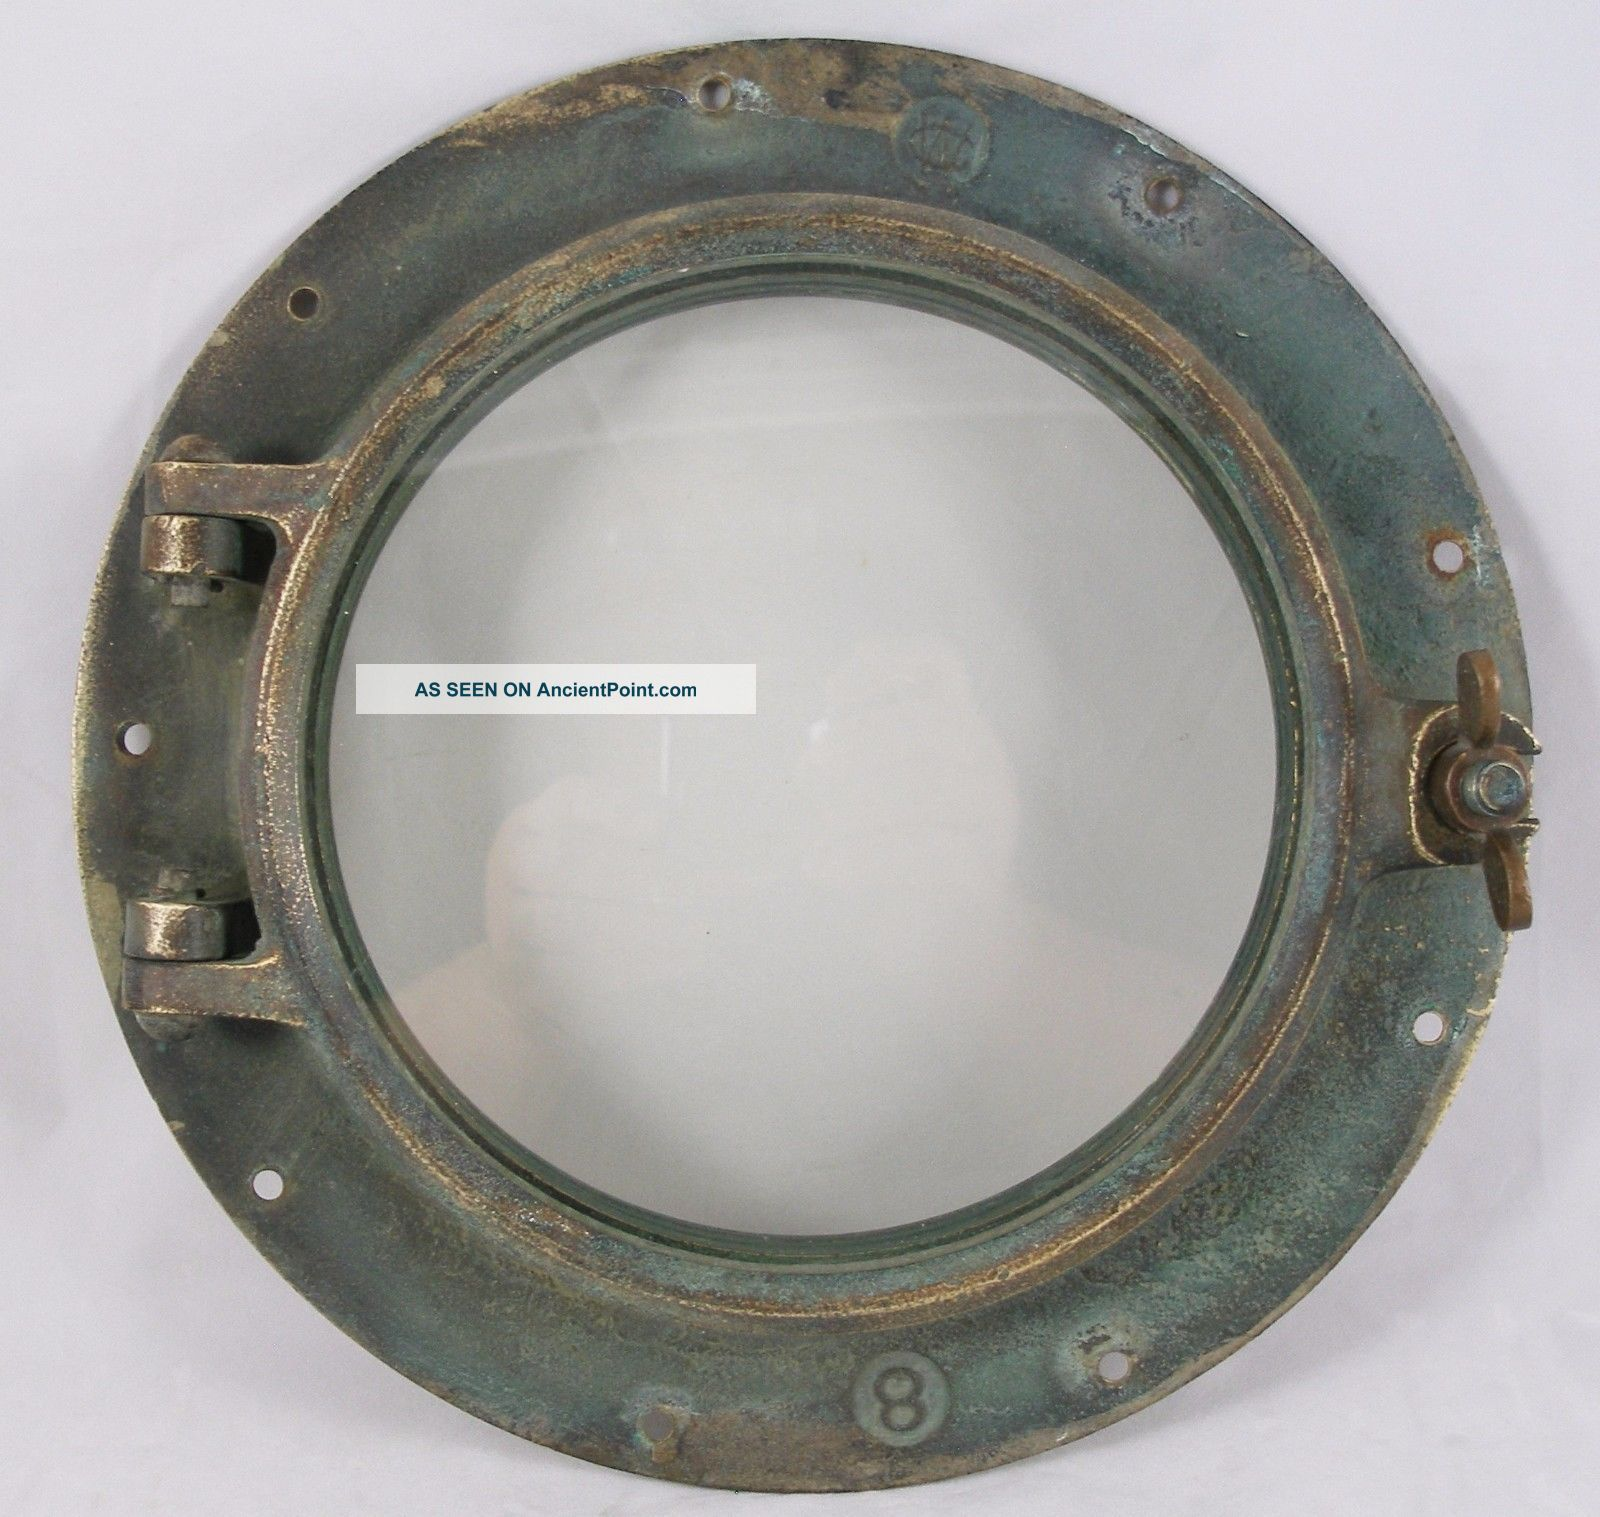 Antique Bronze Porthole,  Salvaged Porthole Nautical Wc 8 Porthole Portholes photo